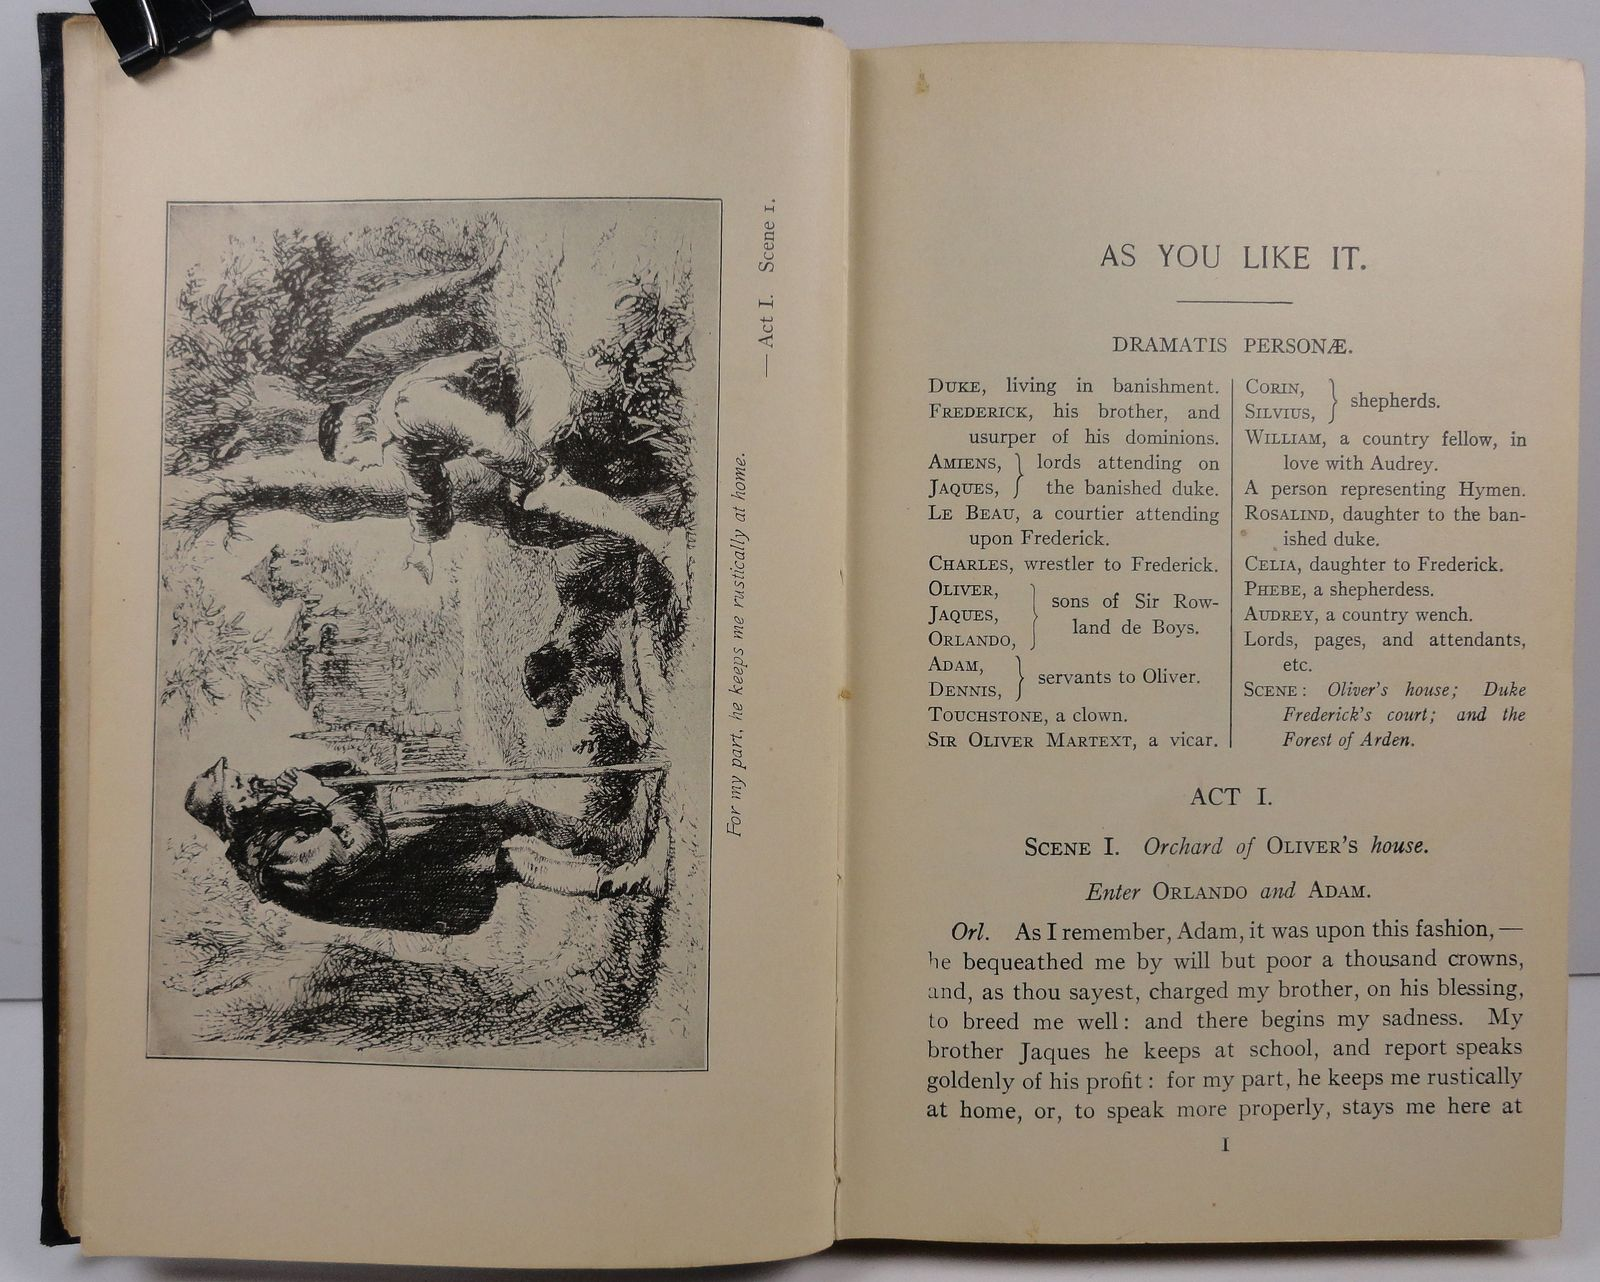 Shakespeare's As You Like It edited by Samuel Thurber 1922